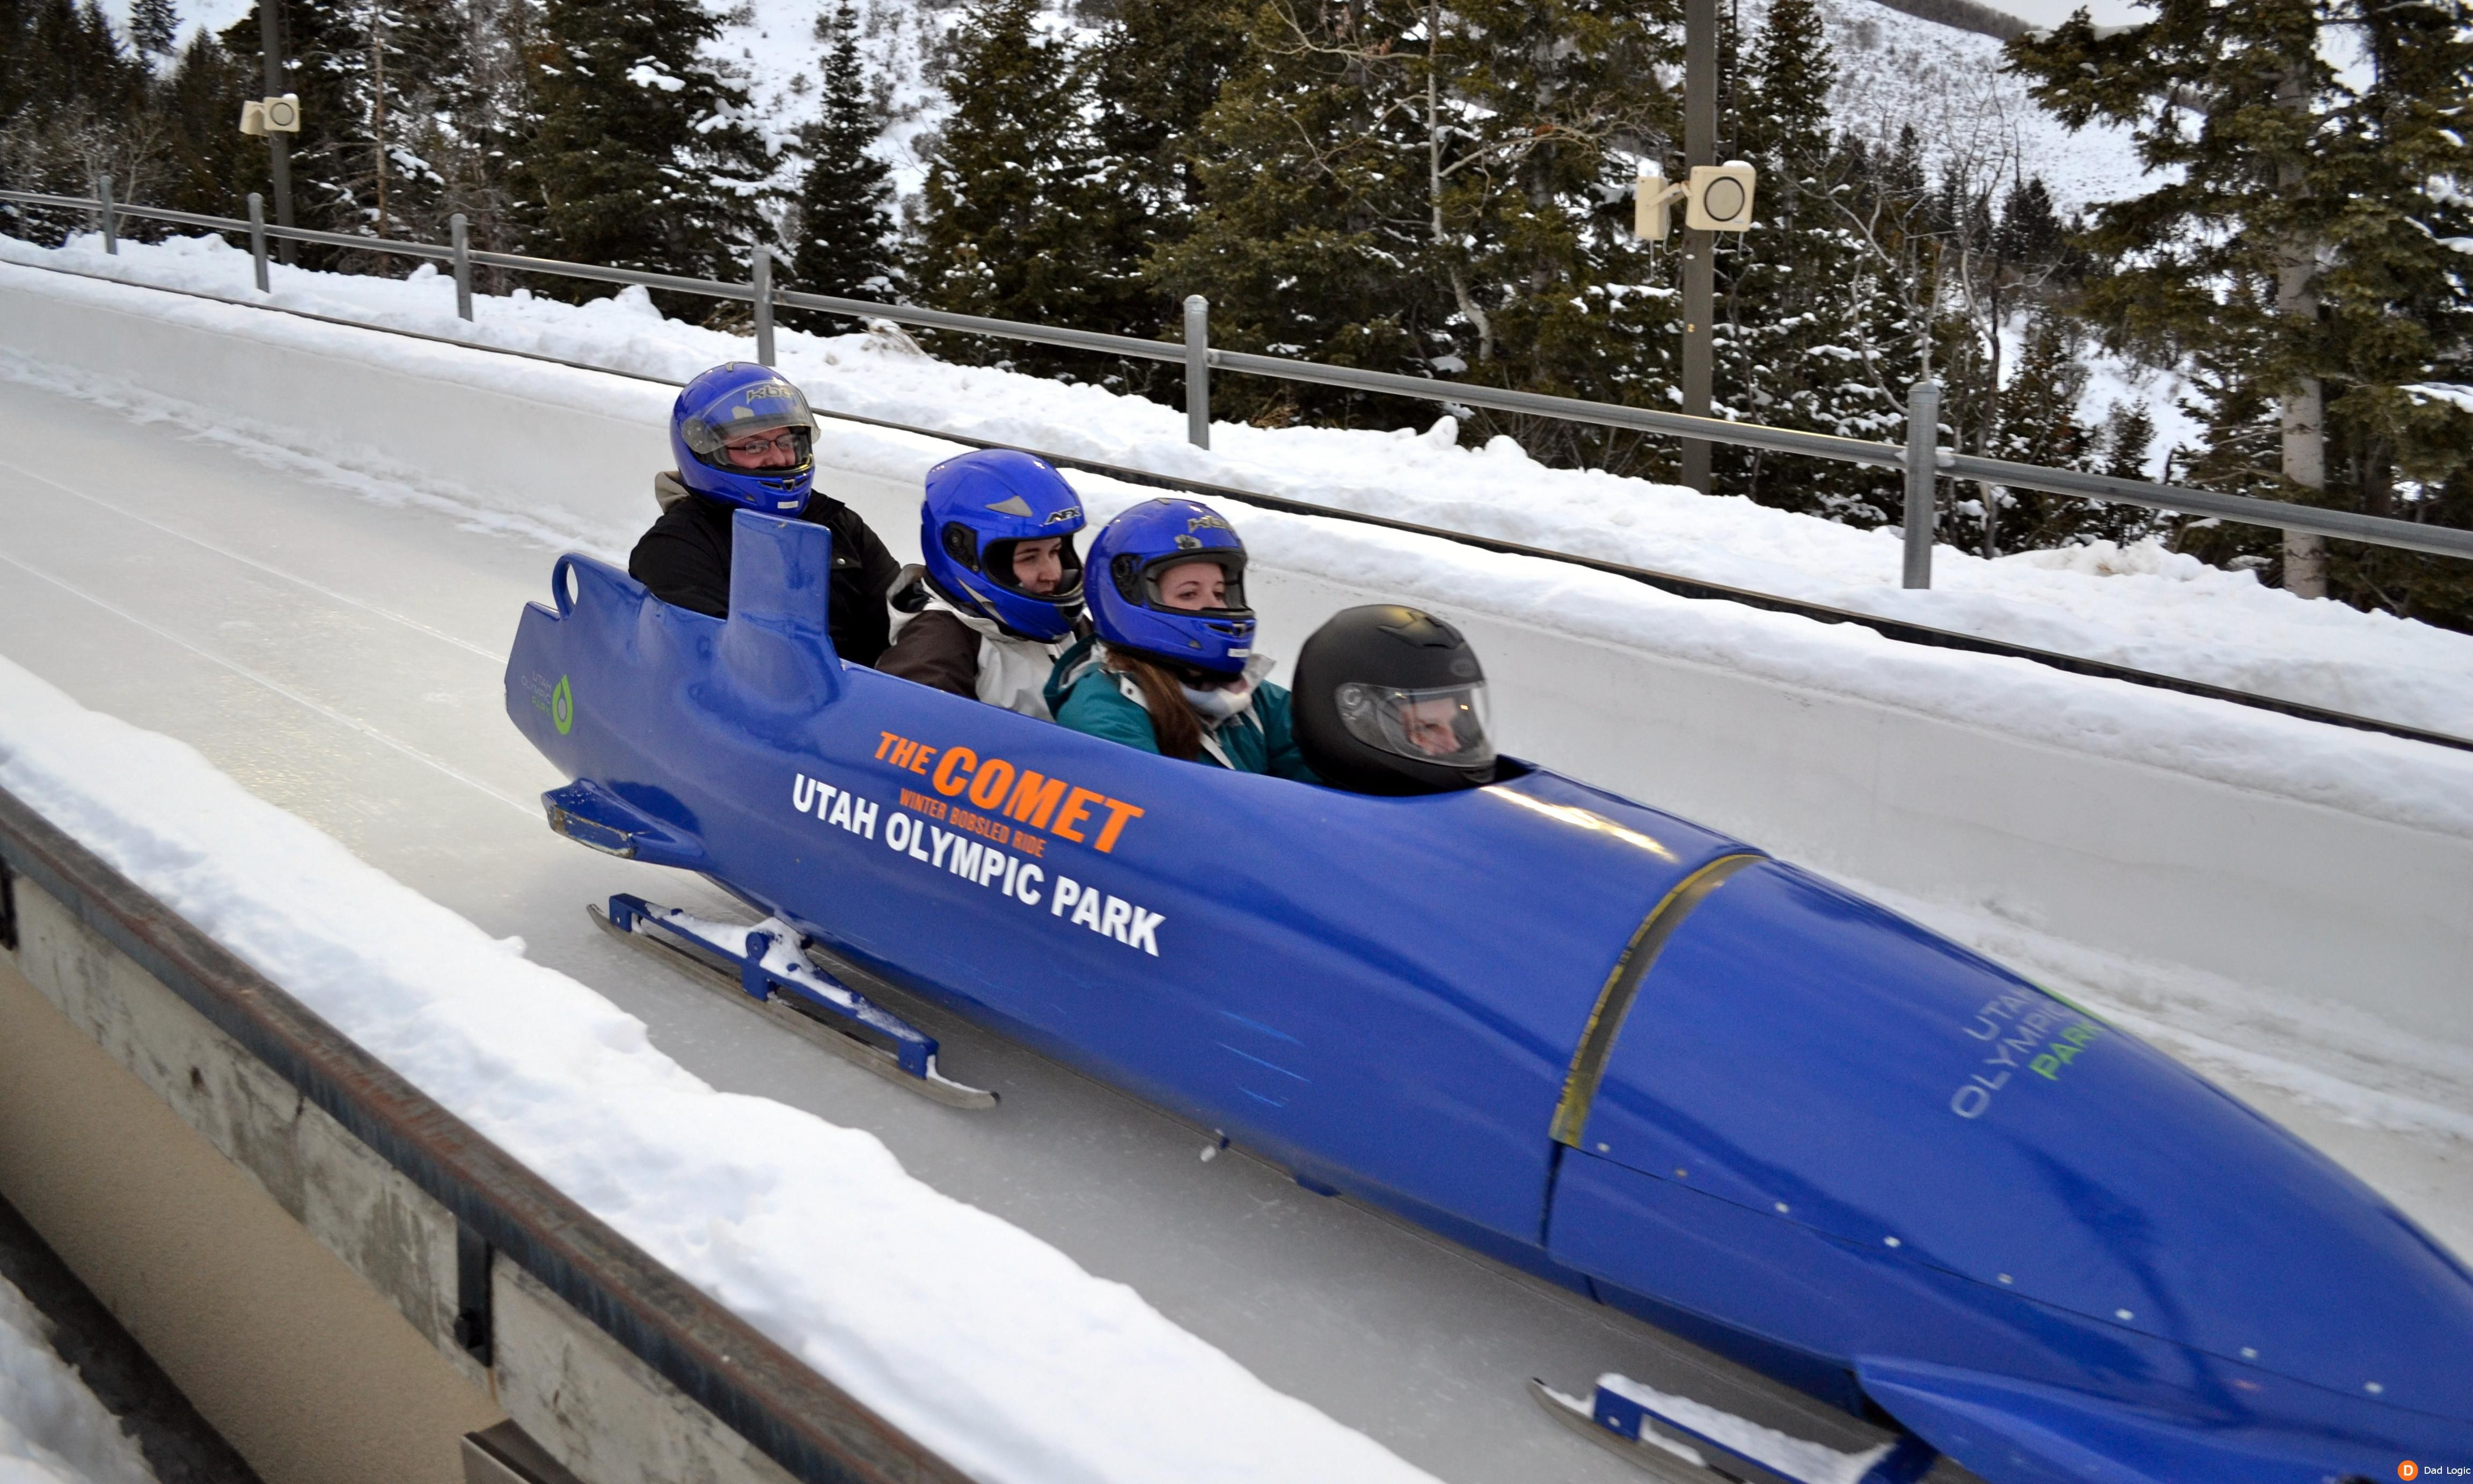 Think You Can Handle The Comet Bobsled Ride At Utah